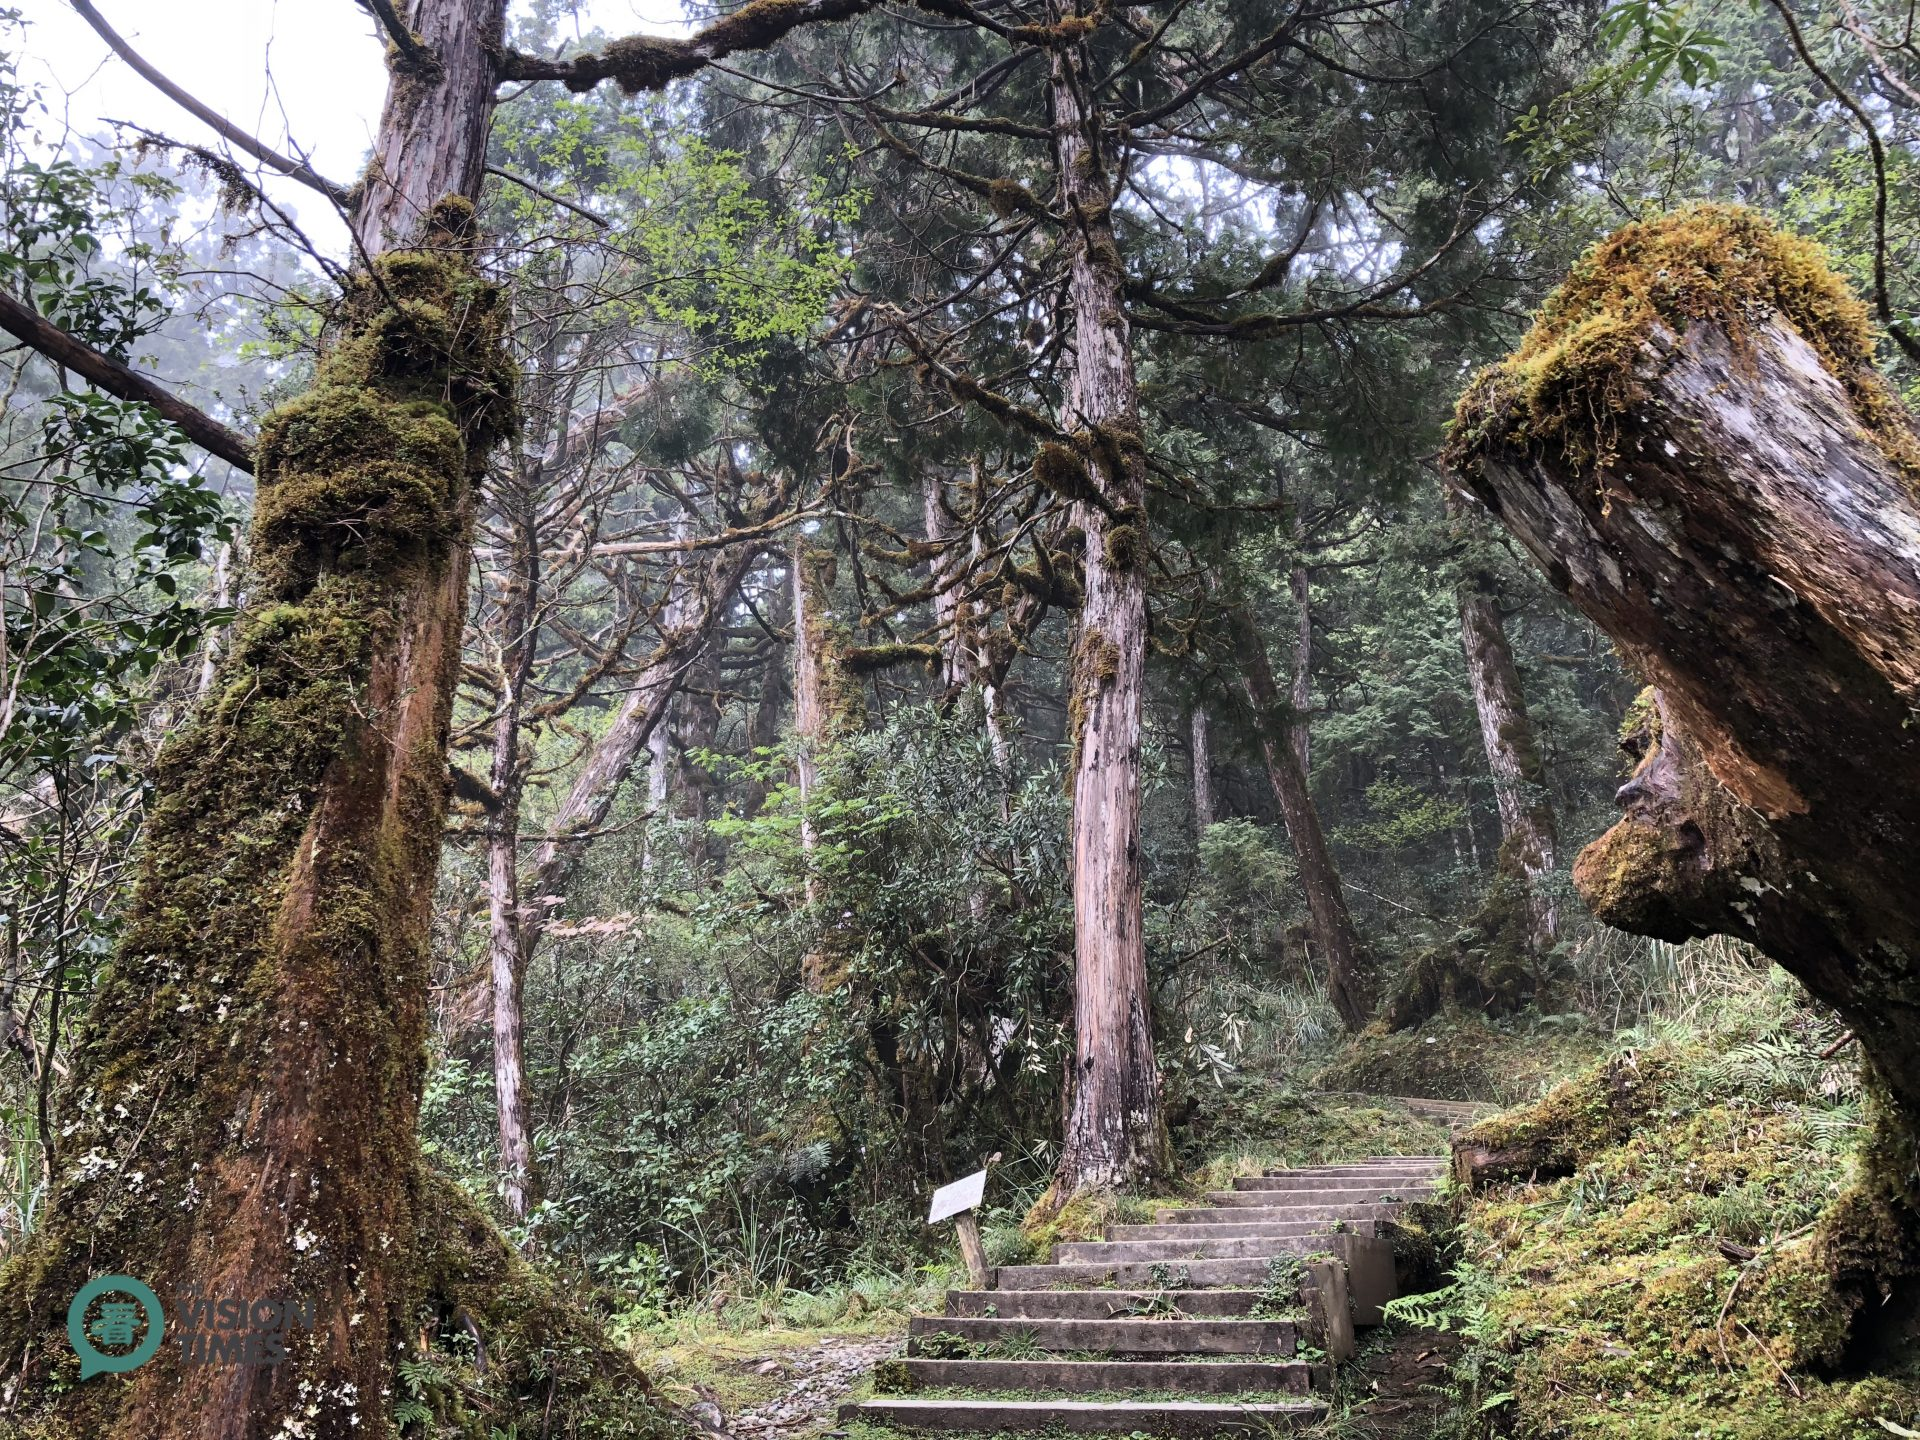 Since Cueifong Lake Circular Trail is deserted most of the time, it still keeps the original outlook of tens of thousands years ago. (Image: Billy Shyu / Vision Times)